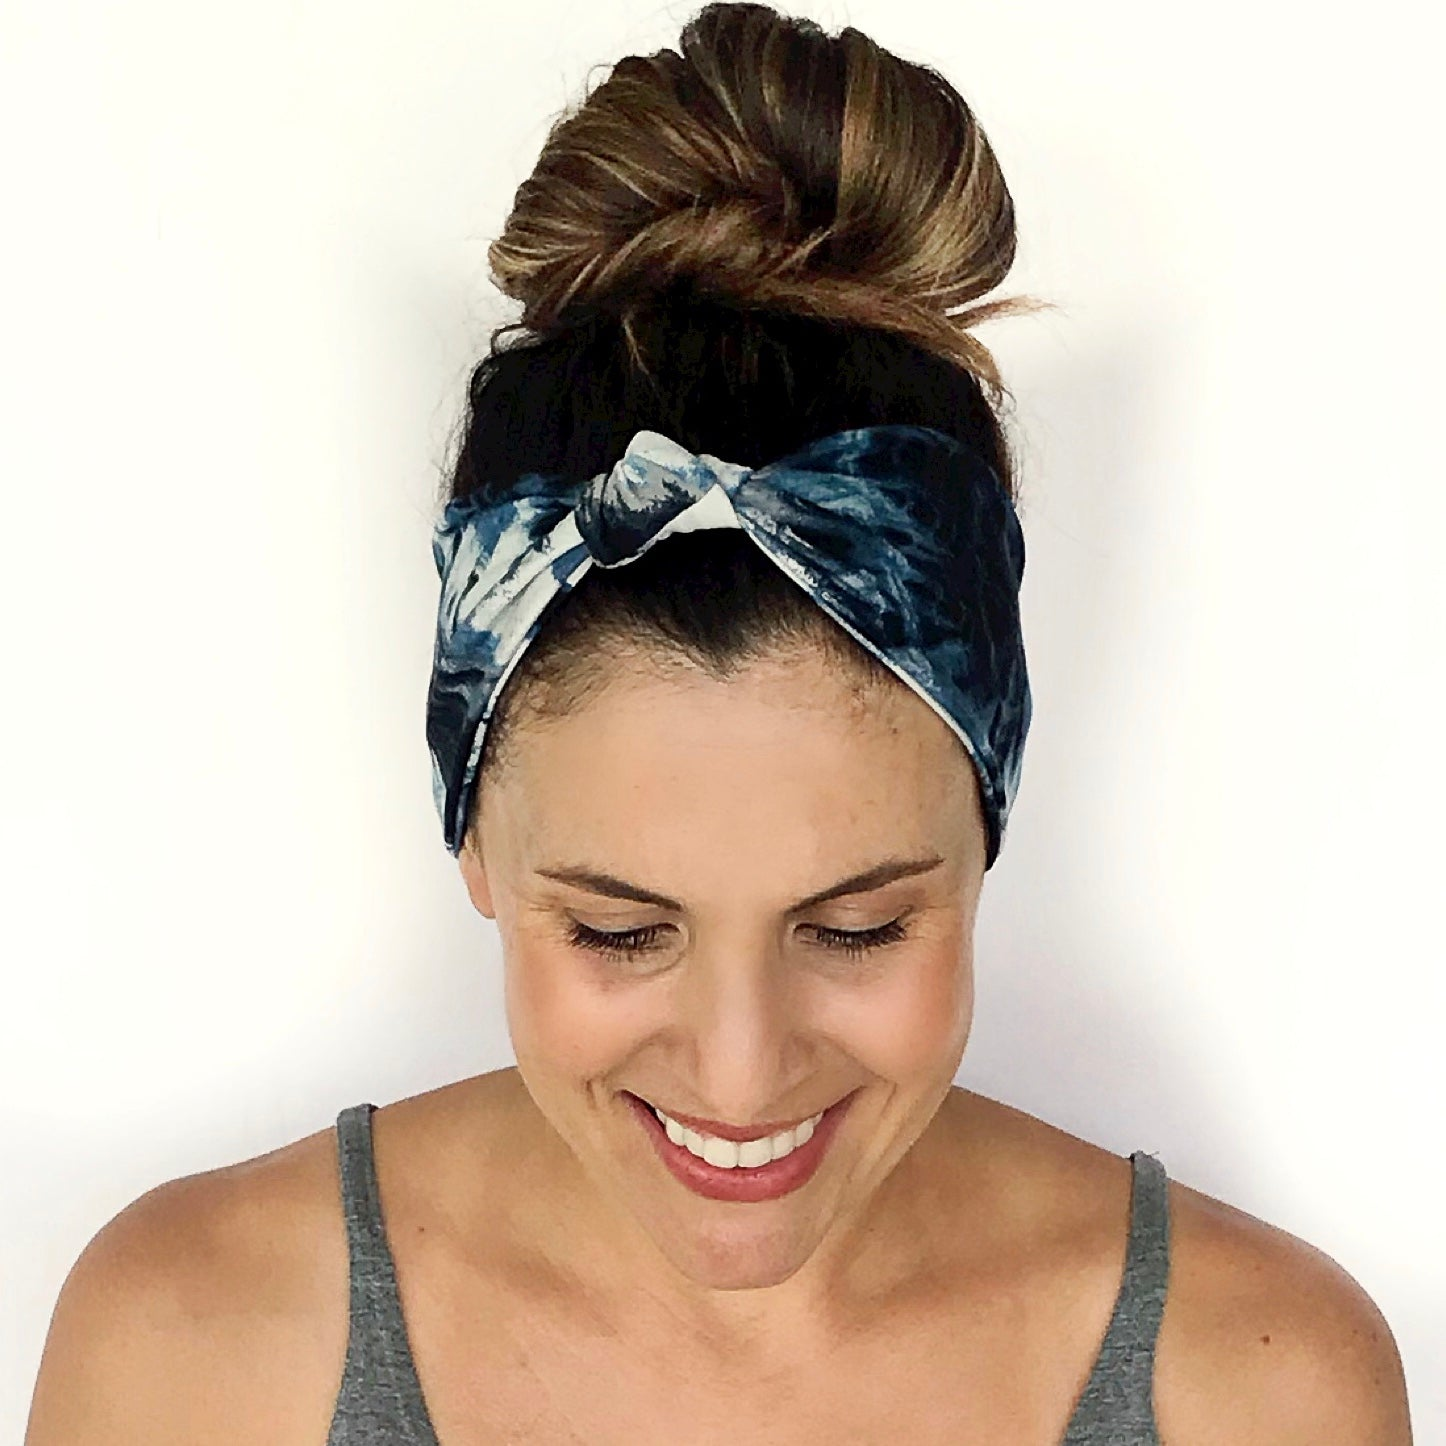 Skylark Knotted Headband